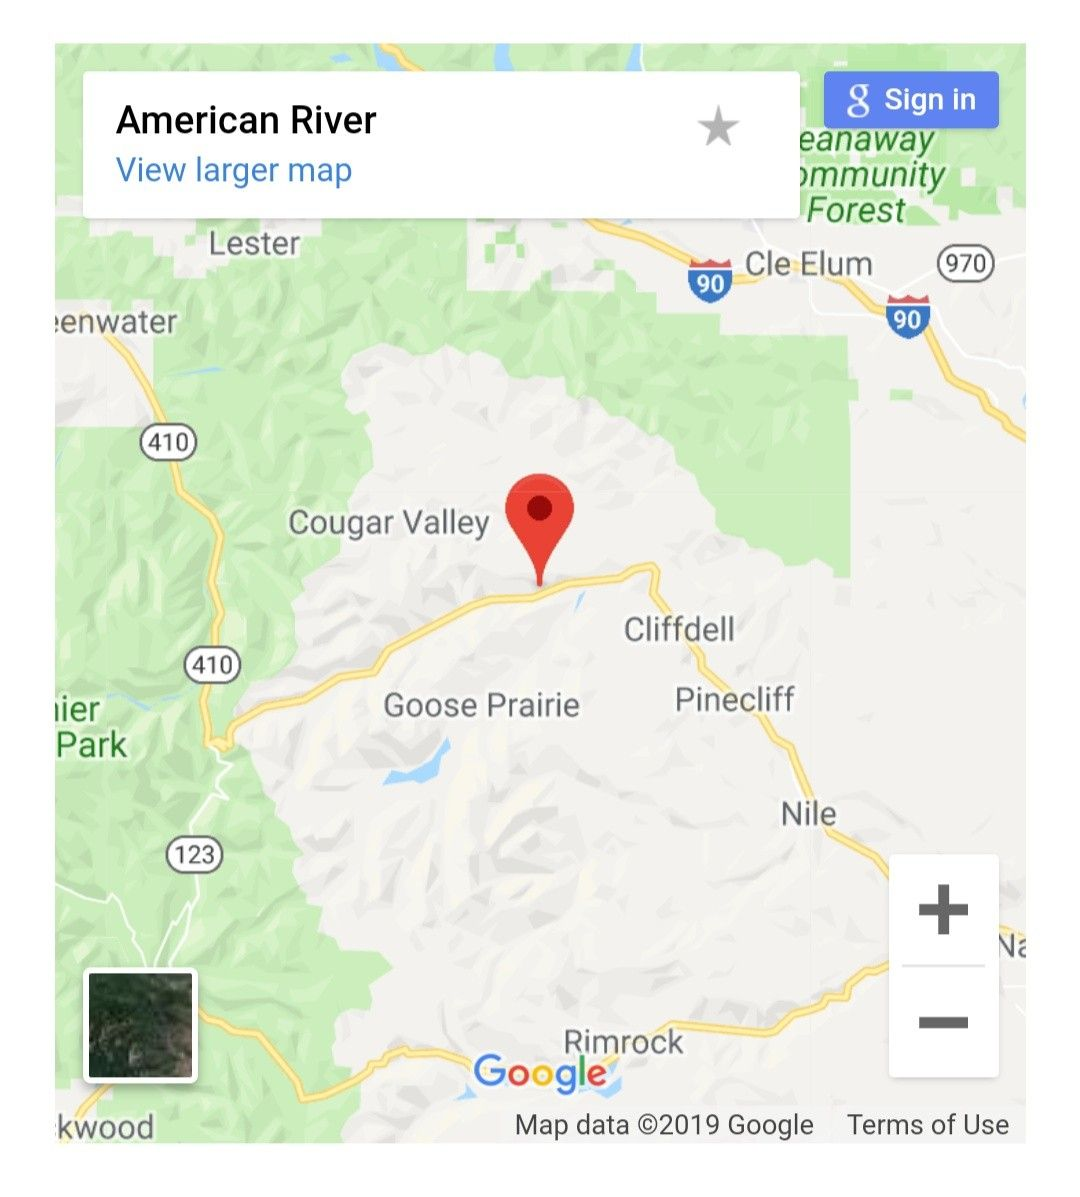 Maps of American River the city of Washington USA. Get the mapquest Directions Maps Mapquest on